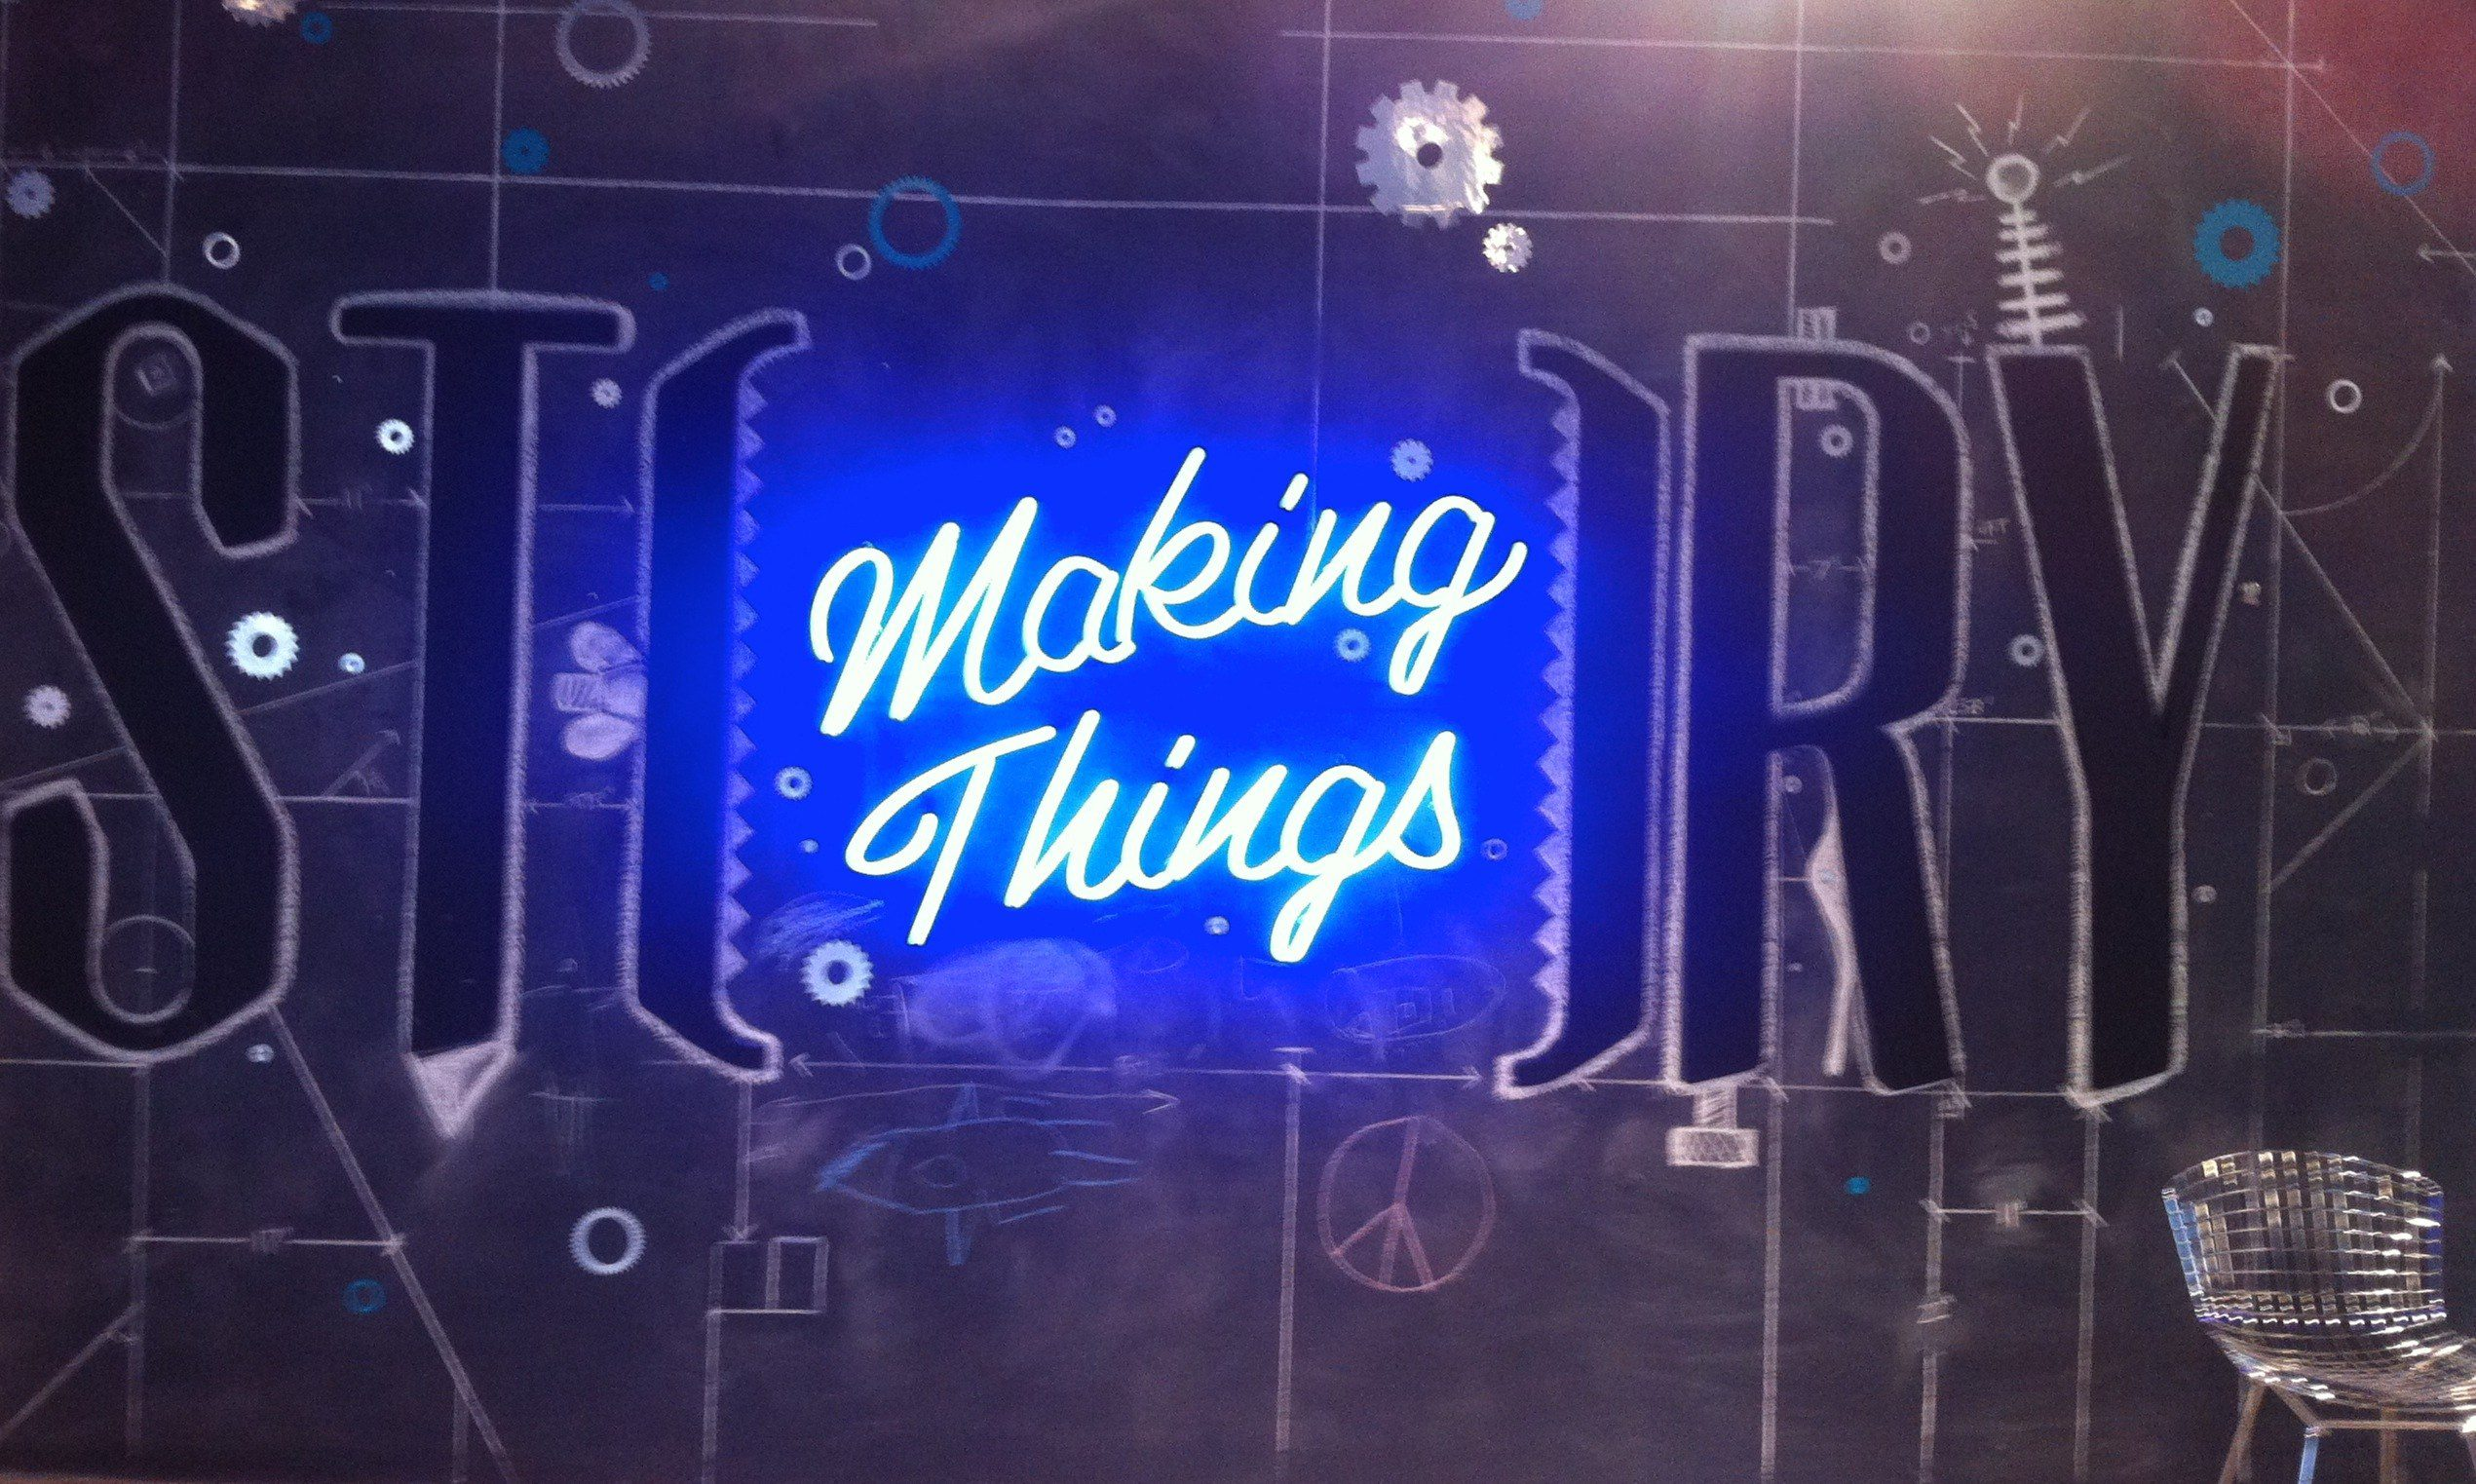 Story Making Things, The Myndset Digital Marketing and Brand Strategy by Minter Dial